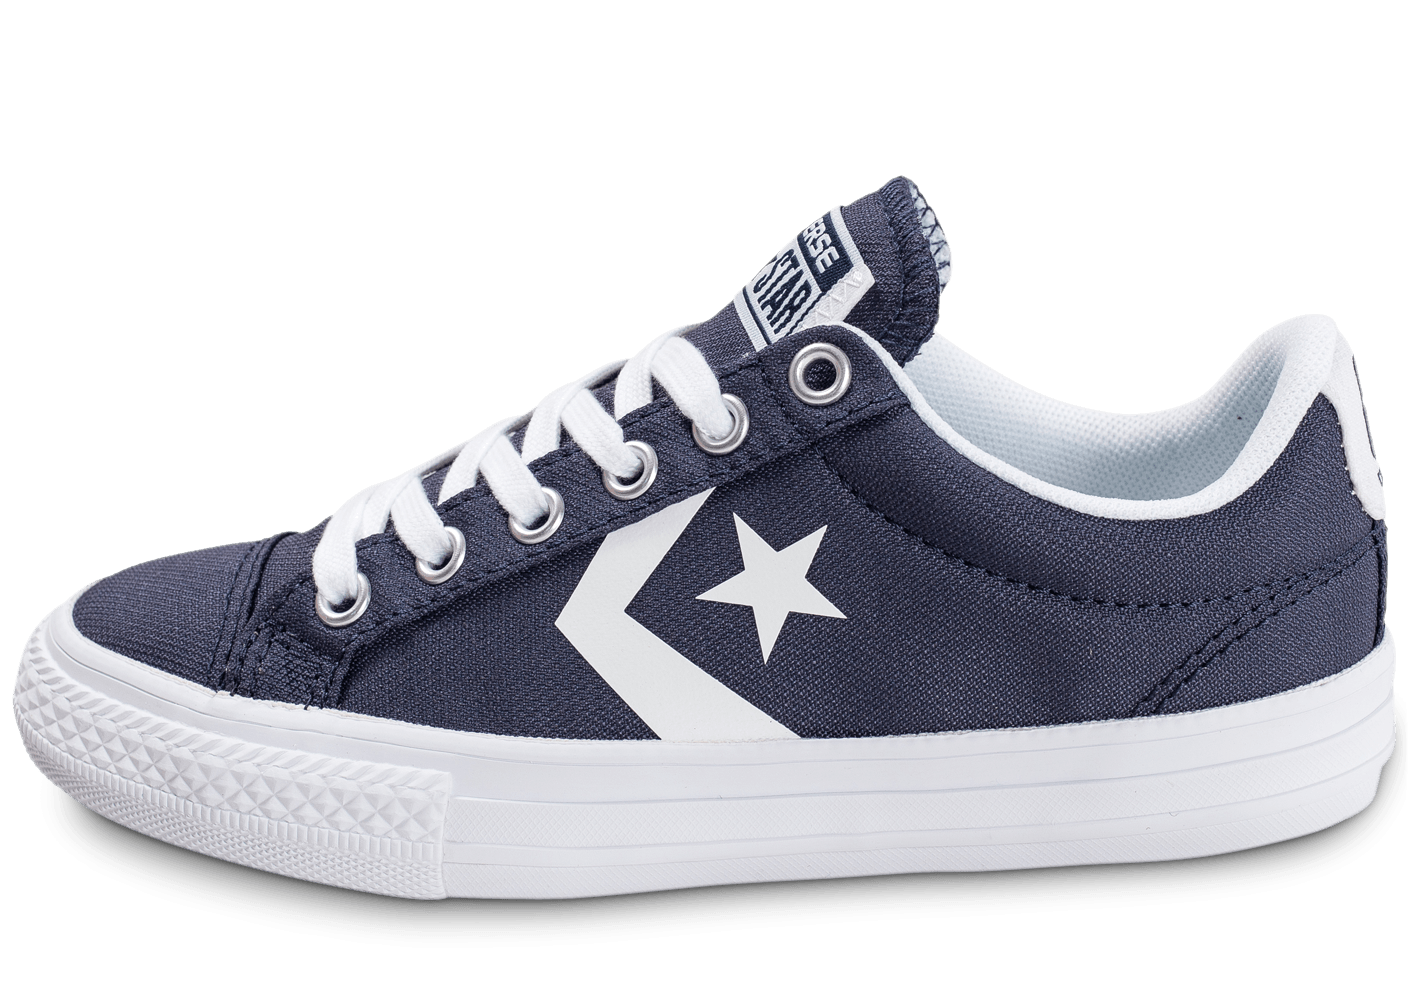 Player Best Bleu B9054 Price Ev 9f29c Star Converse Ox doCWBrxe